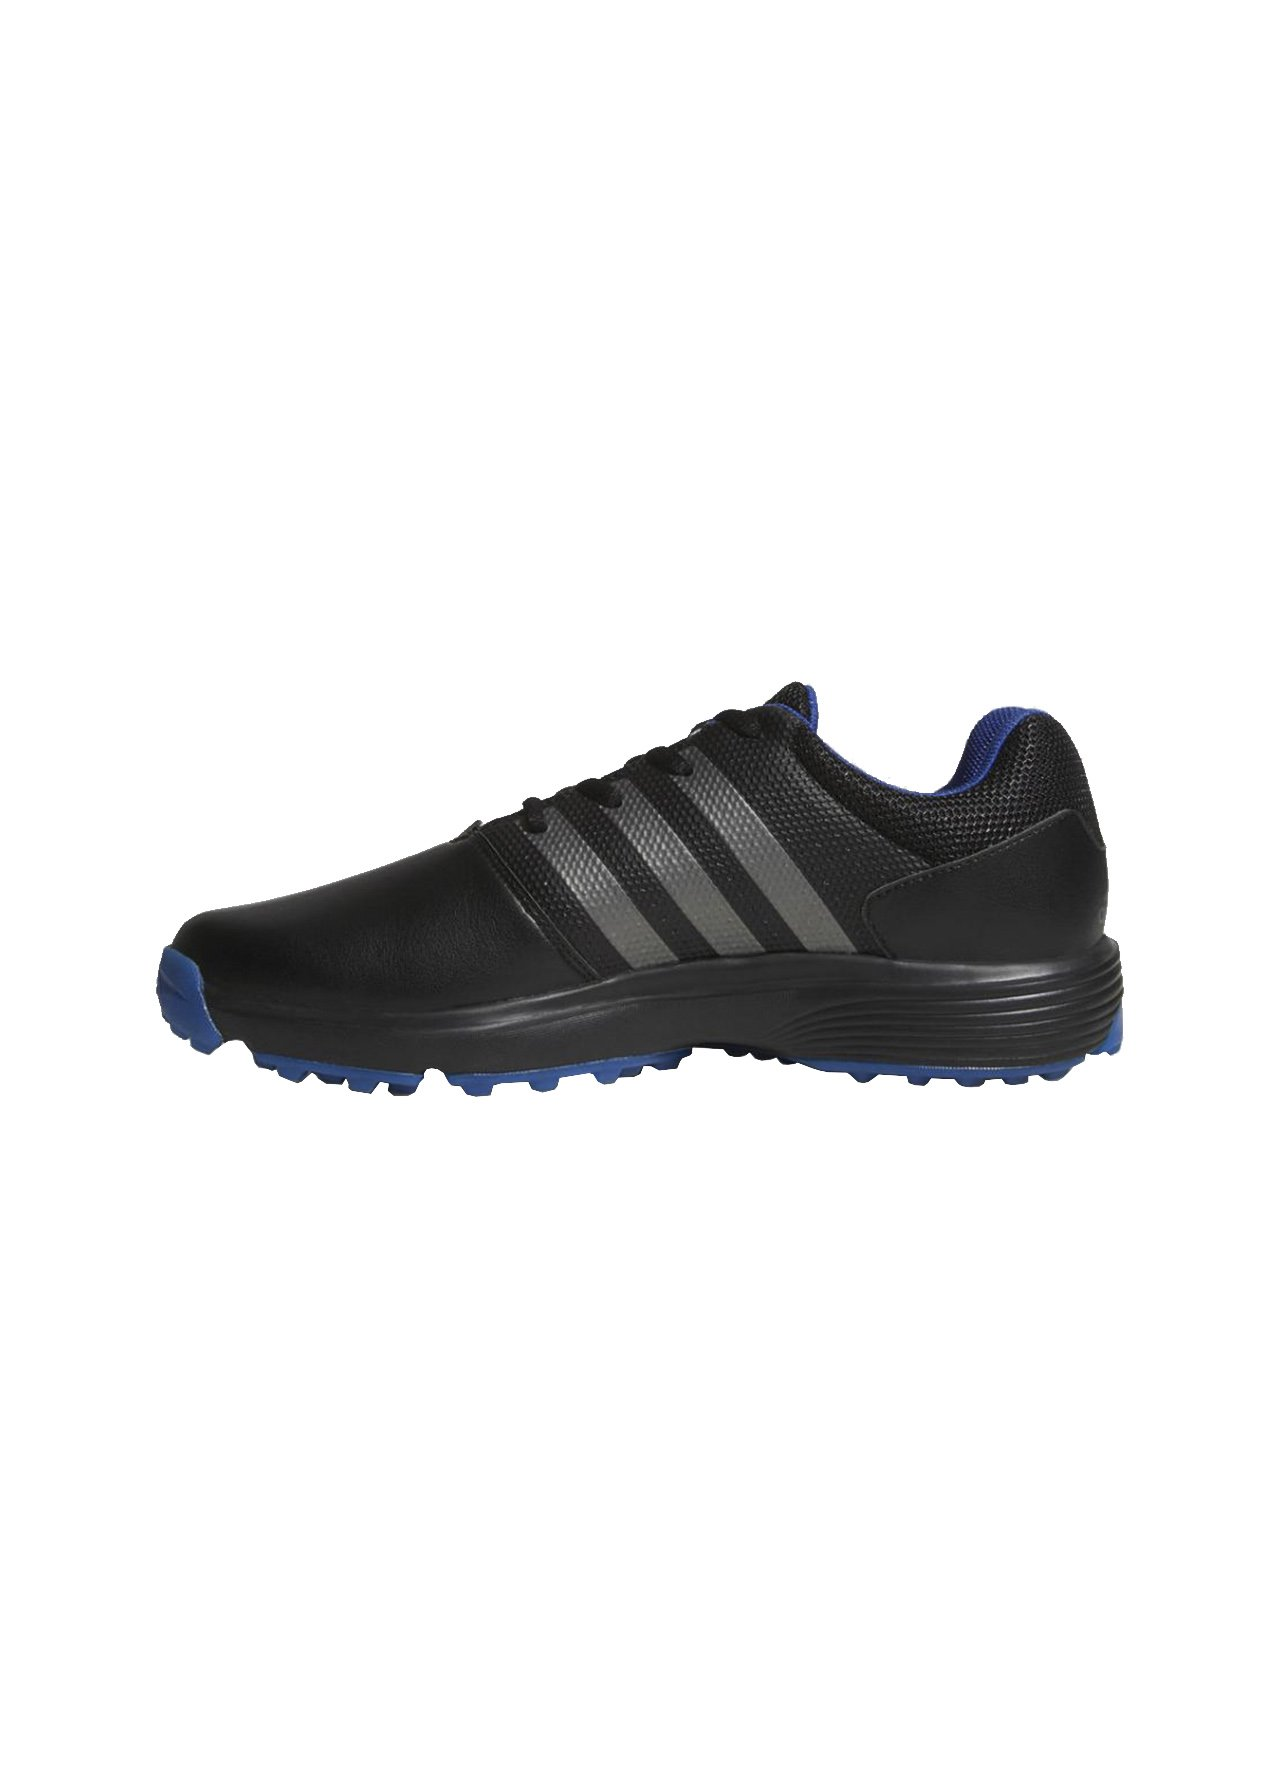 e8744d2e0 Bank Holiday Sale - Adidas 360 Traxion Golf Shoes (D625) from County ...